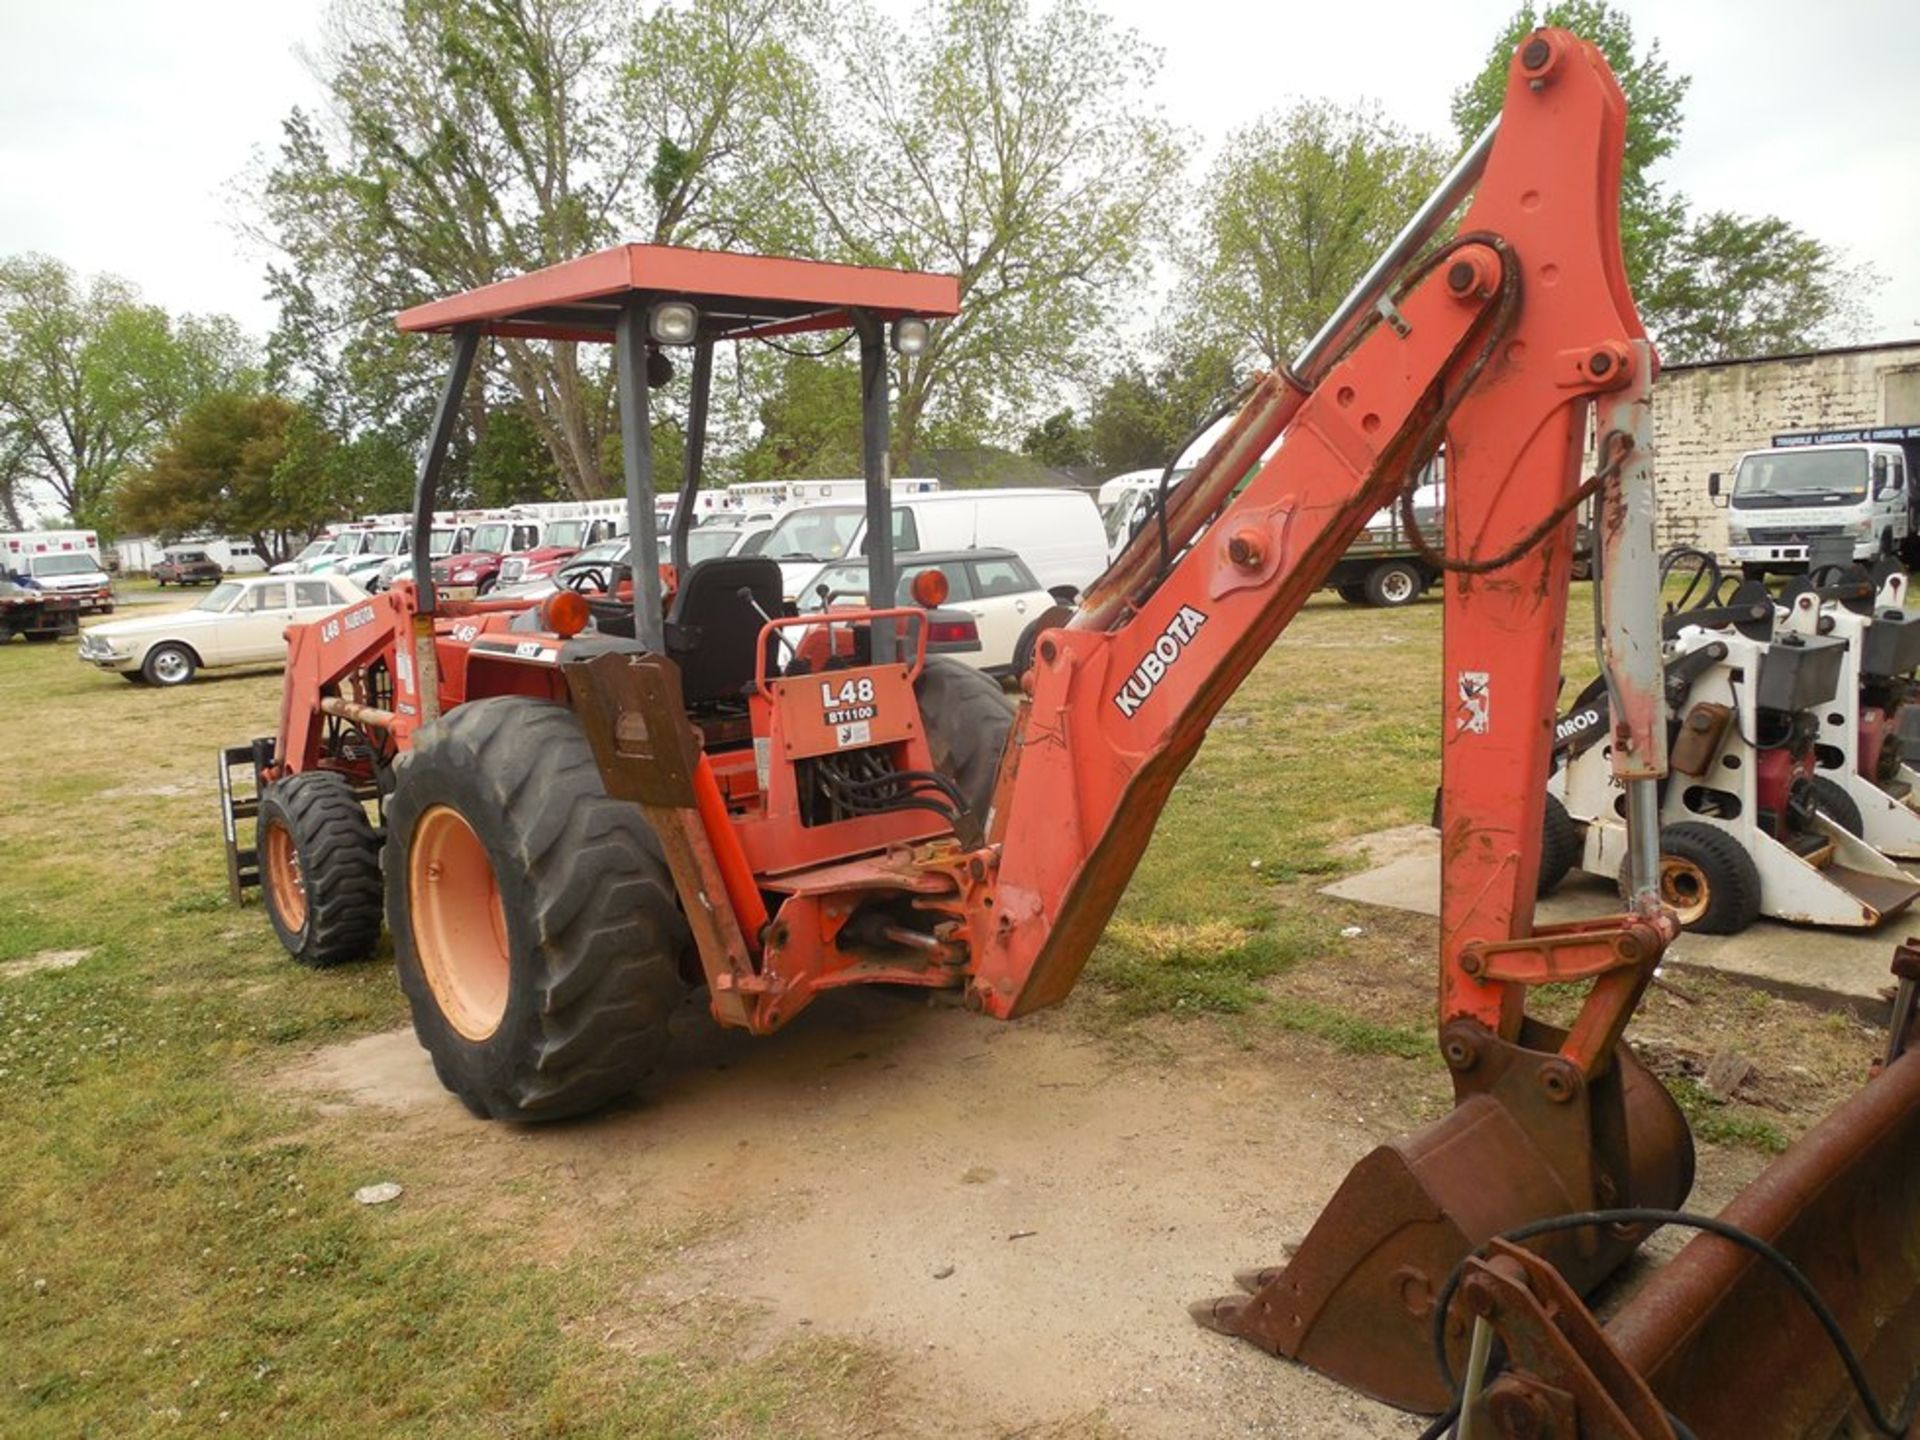 Kubota L48 Tractor Hydrostat trans. 4wd, forks and 4 in 1 bucket, backhoe attachement - Image 5 of 7